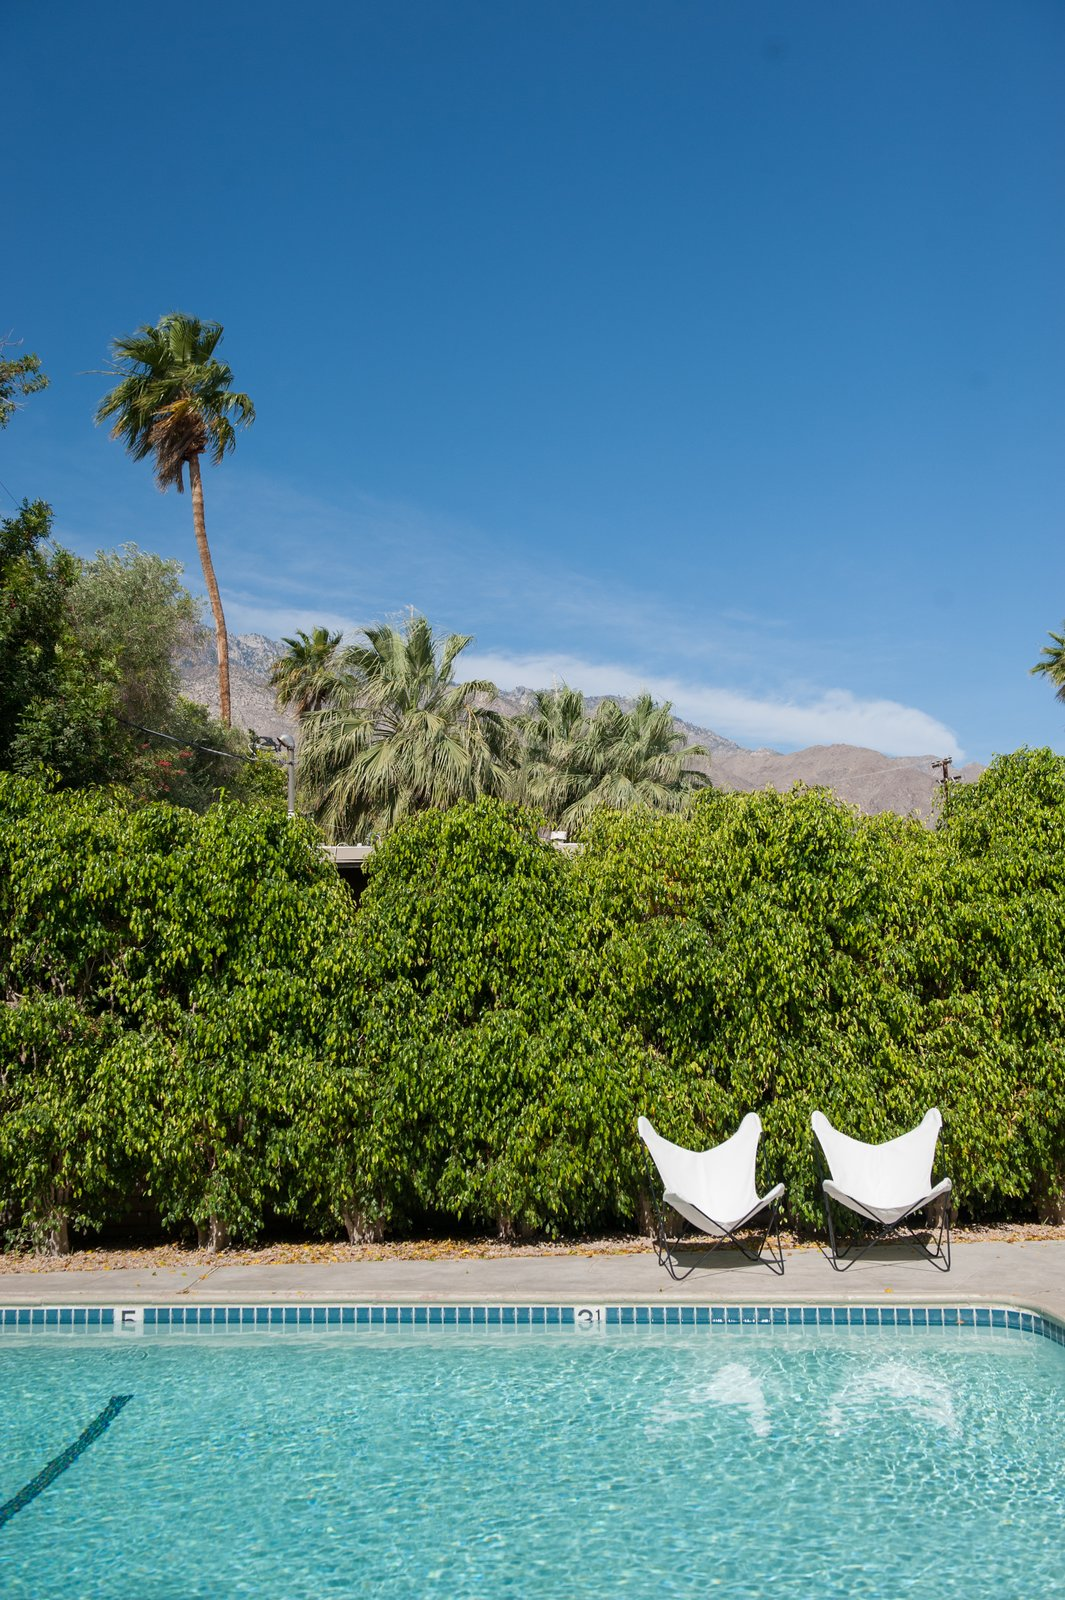 Photo 8 of 12 in A Celebrated Palm Springs Hotel Asks $1.8M